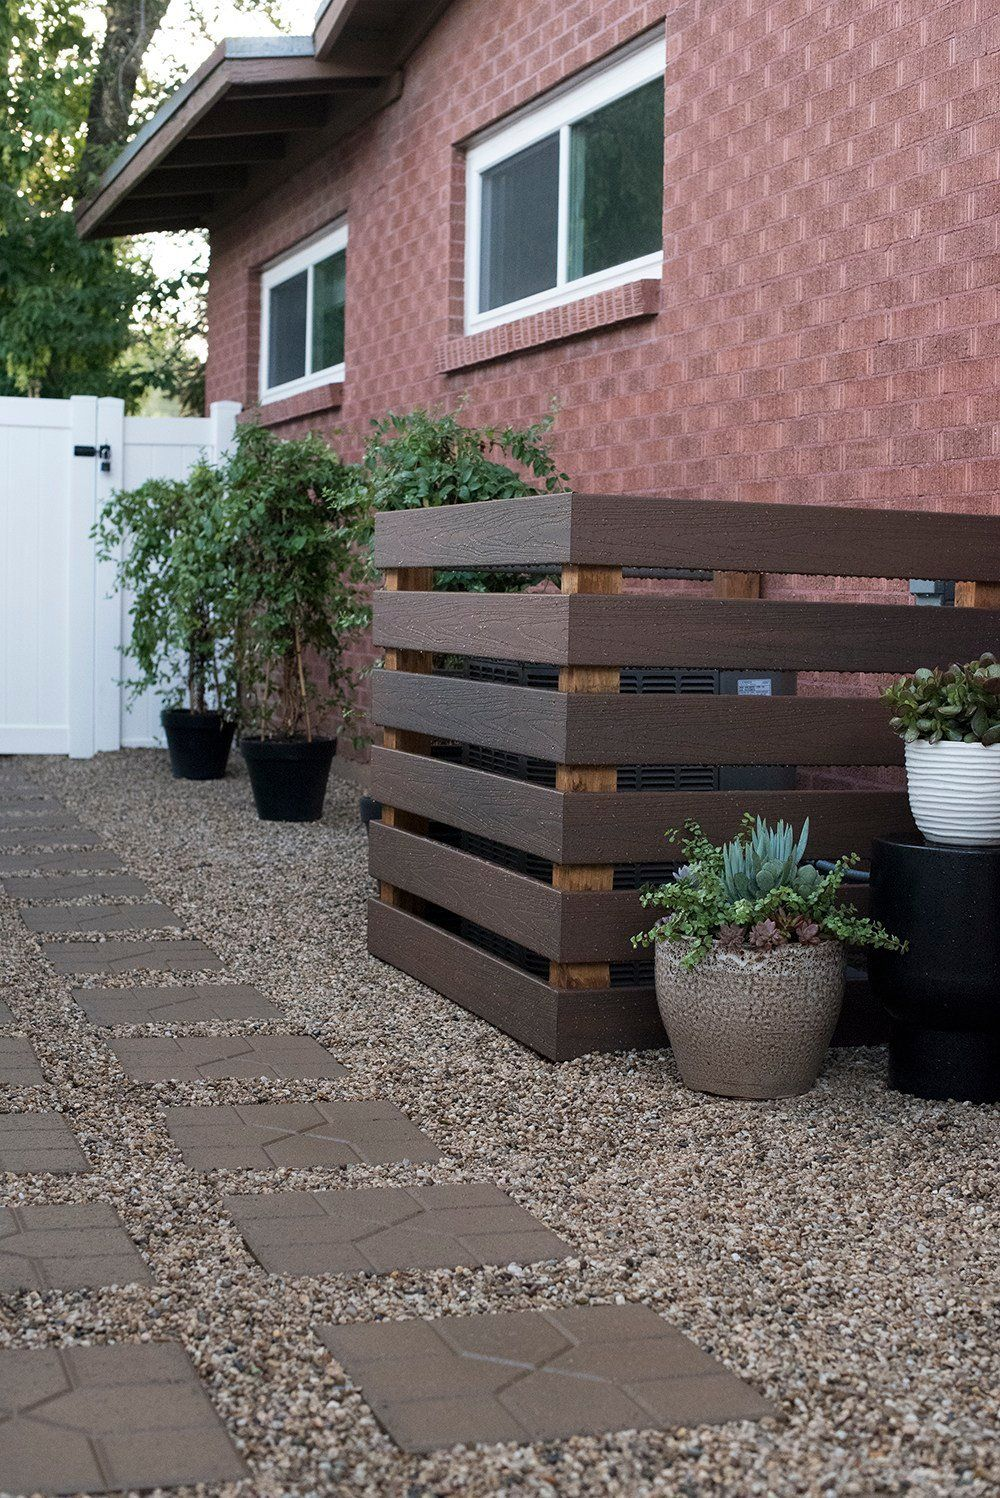 3 Day Project Transforming Our Side Yard Yard ideas